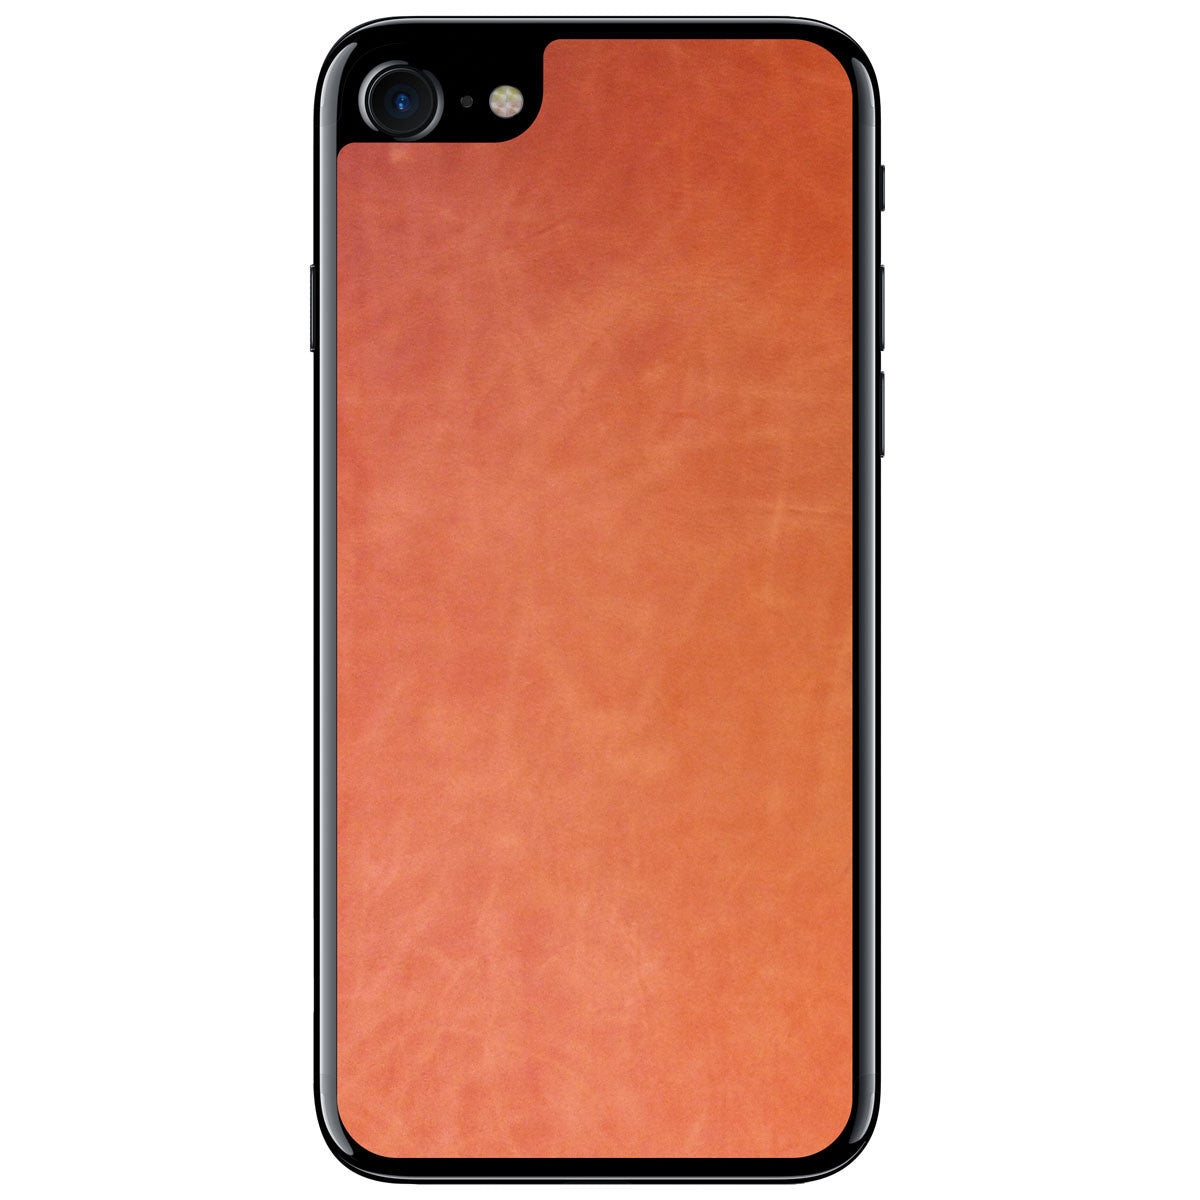 Brandy iPhone 7 Leather Skin